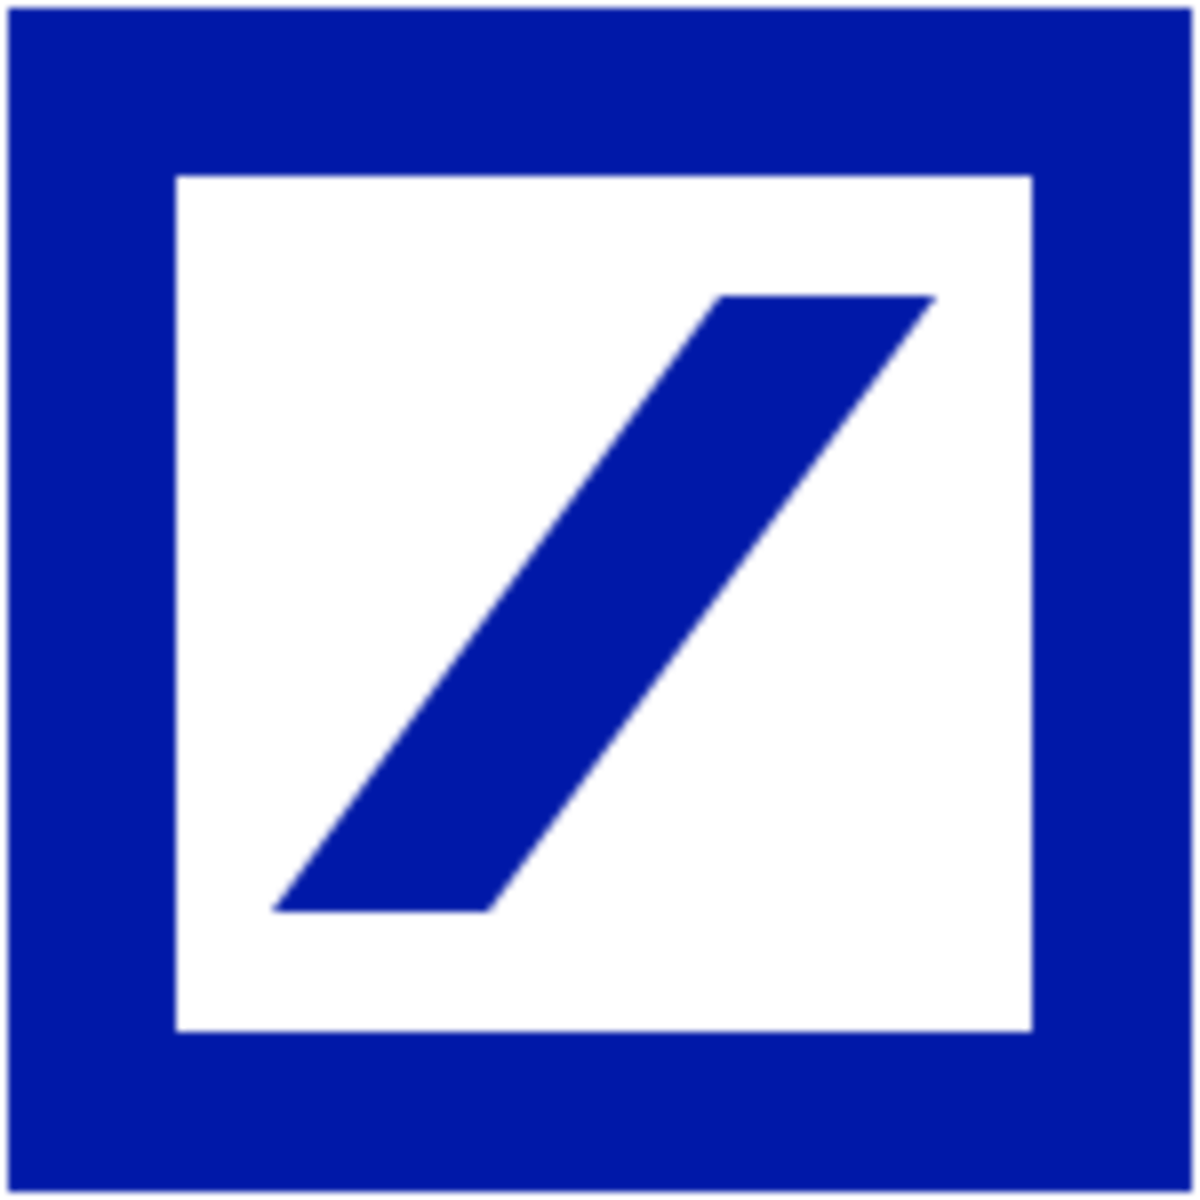 By Deutsche Bank AG (GIF format logo) [Public domain], via Wikimedia Commons